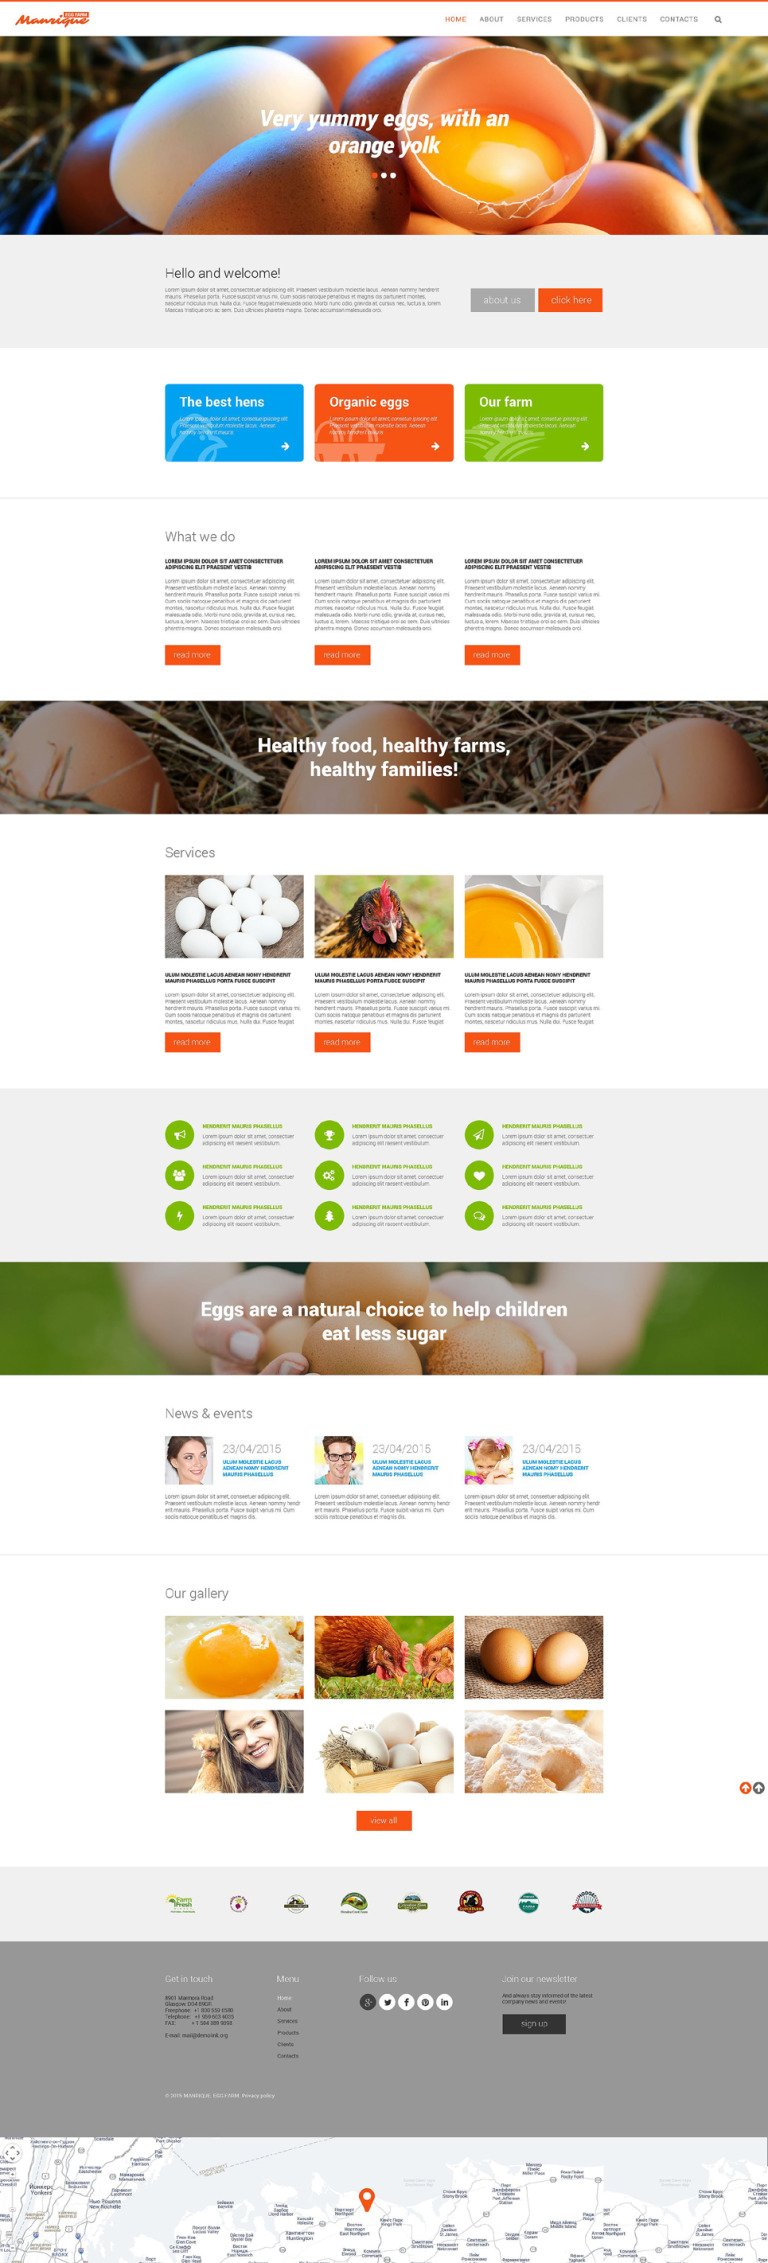 Egg Farm Website Template New Screenshots BIG